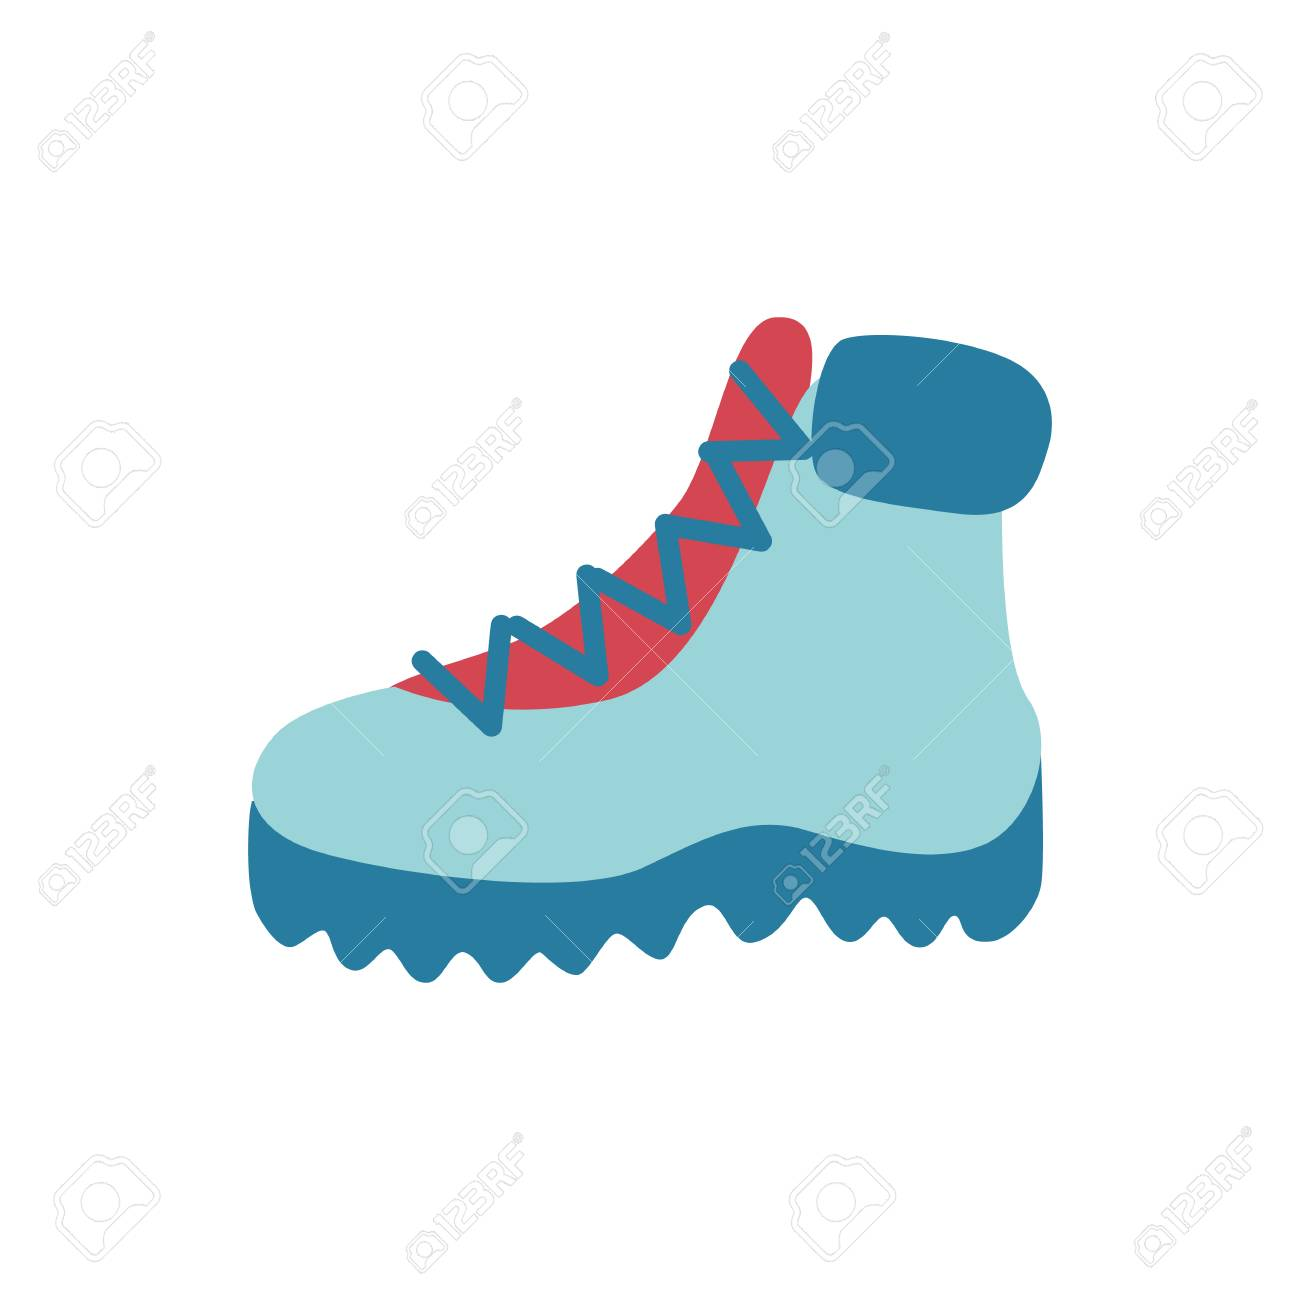 Vector flat boots icon. Hiking, casual walking travelling shoes for cold weather season - winter or autumn. Male, female footwear for active leisure, outdoor sport activity - 113744716